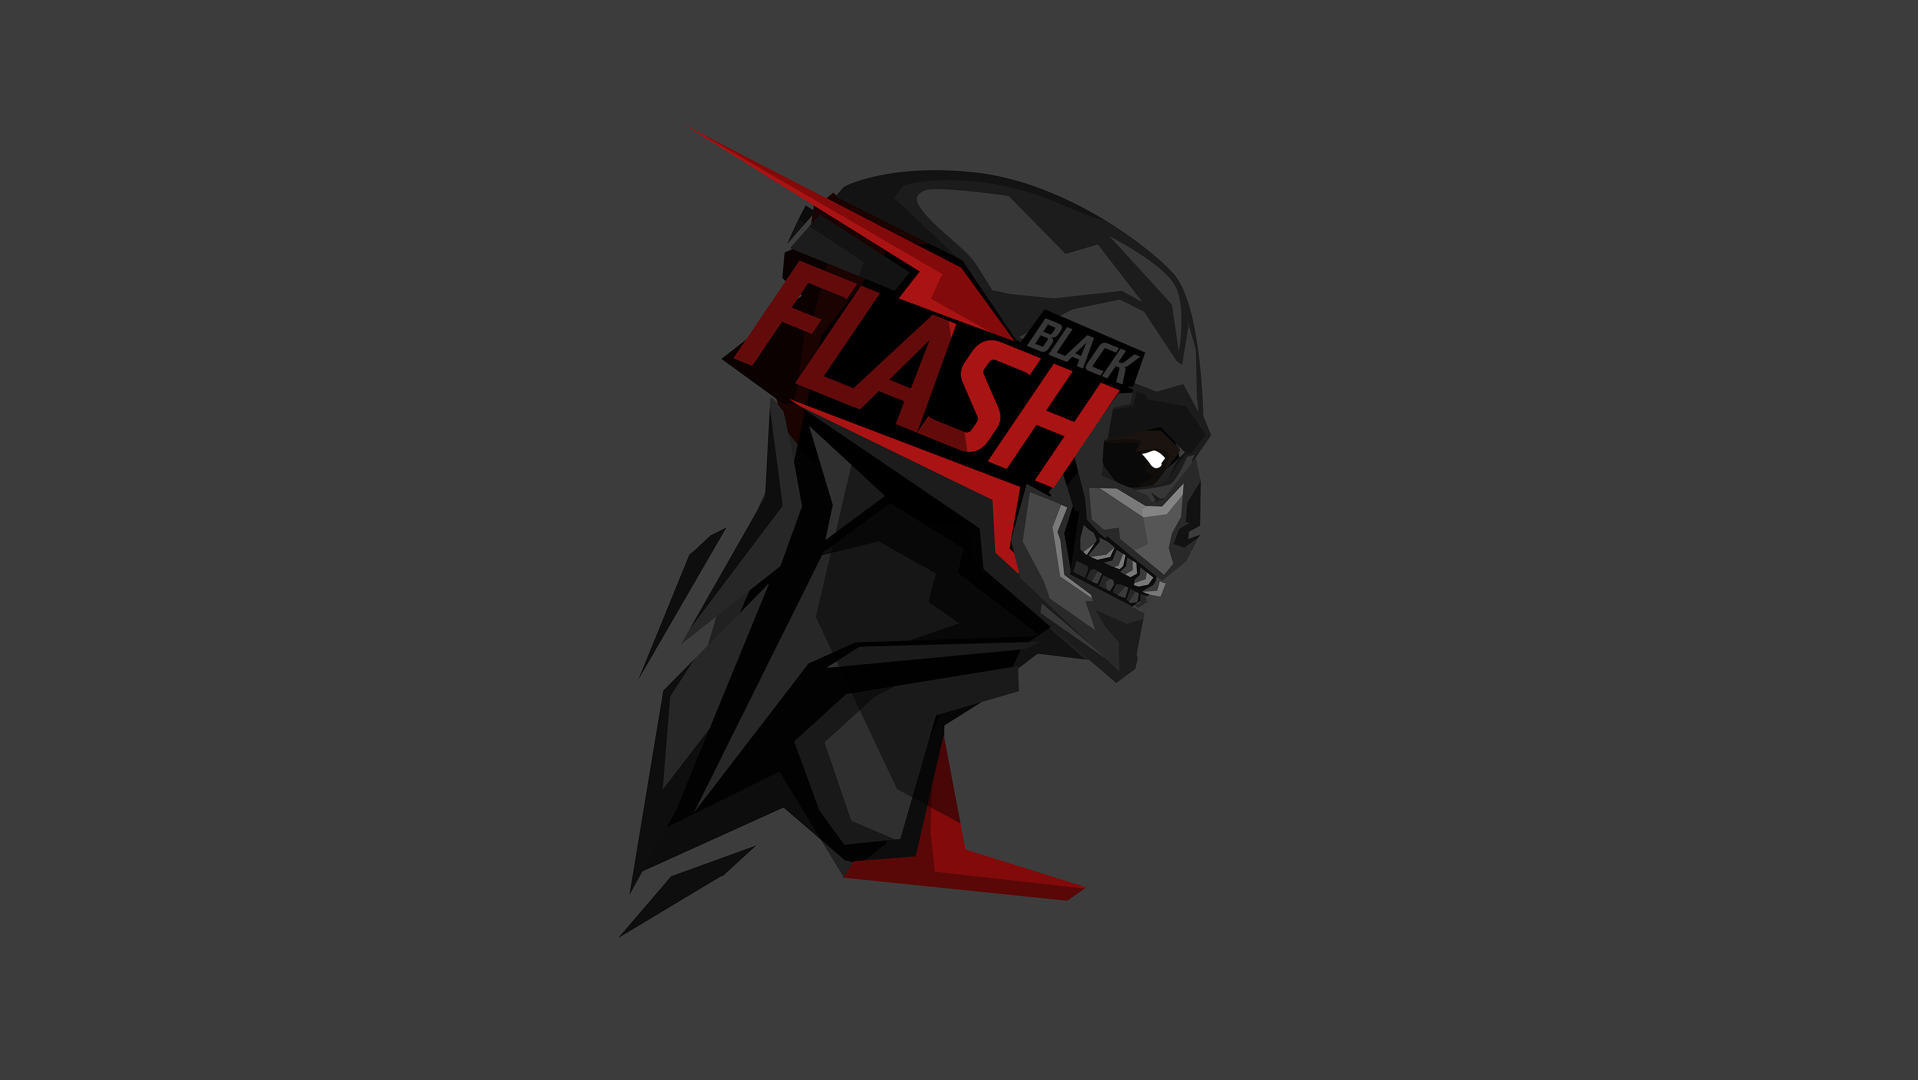 2 Black Flash Hd Wallpapers Background Images Wallpaper Abyss